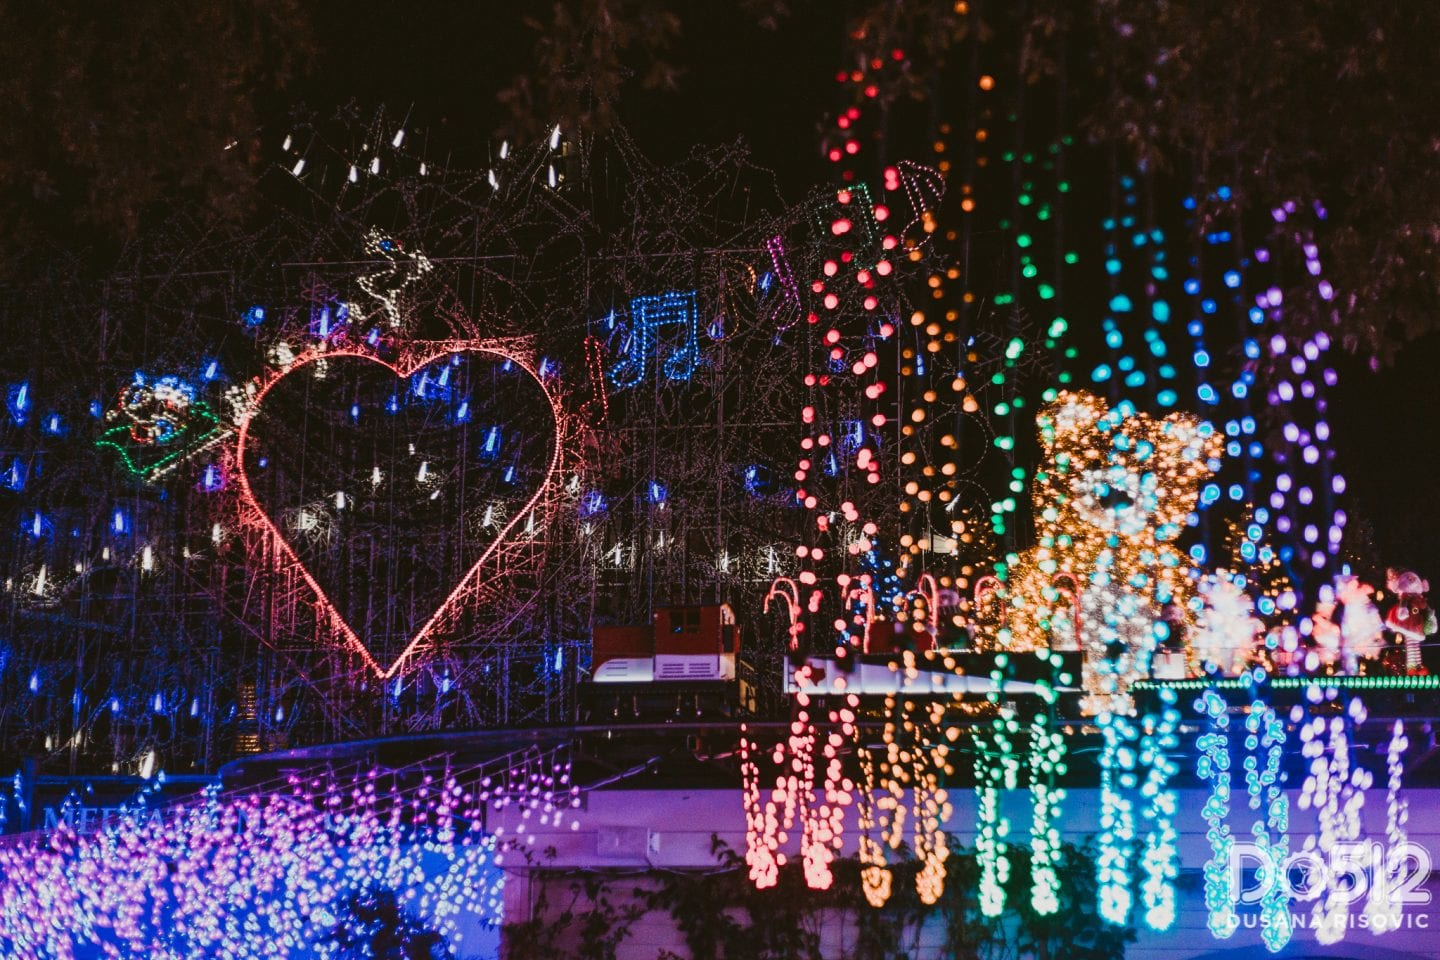 Mozarts Christmas Lights 2020 Holiday Lights at Mozart's Coffee Roasters – Do512 Family